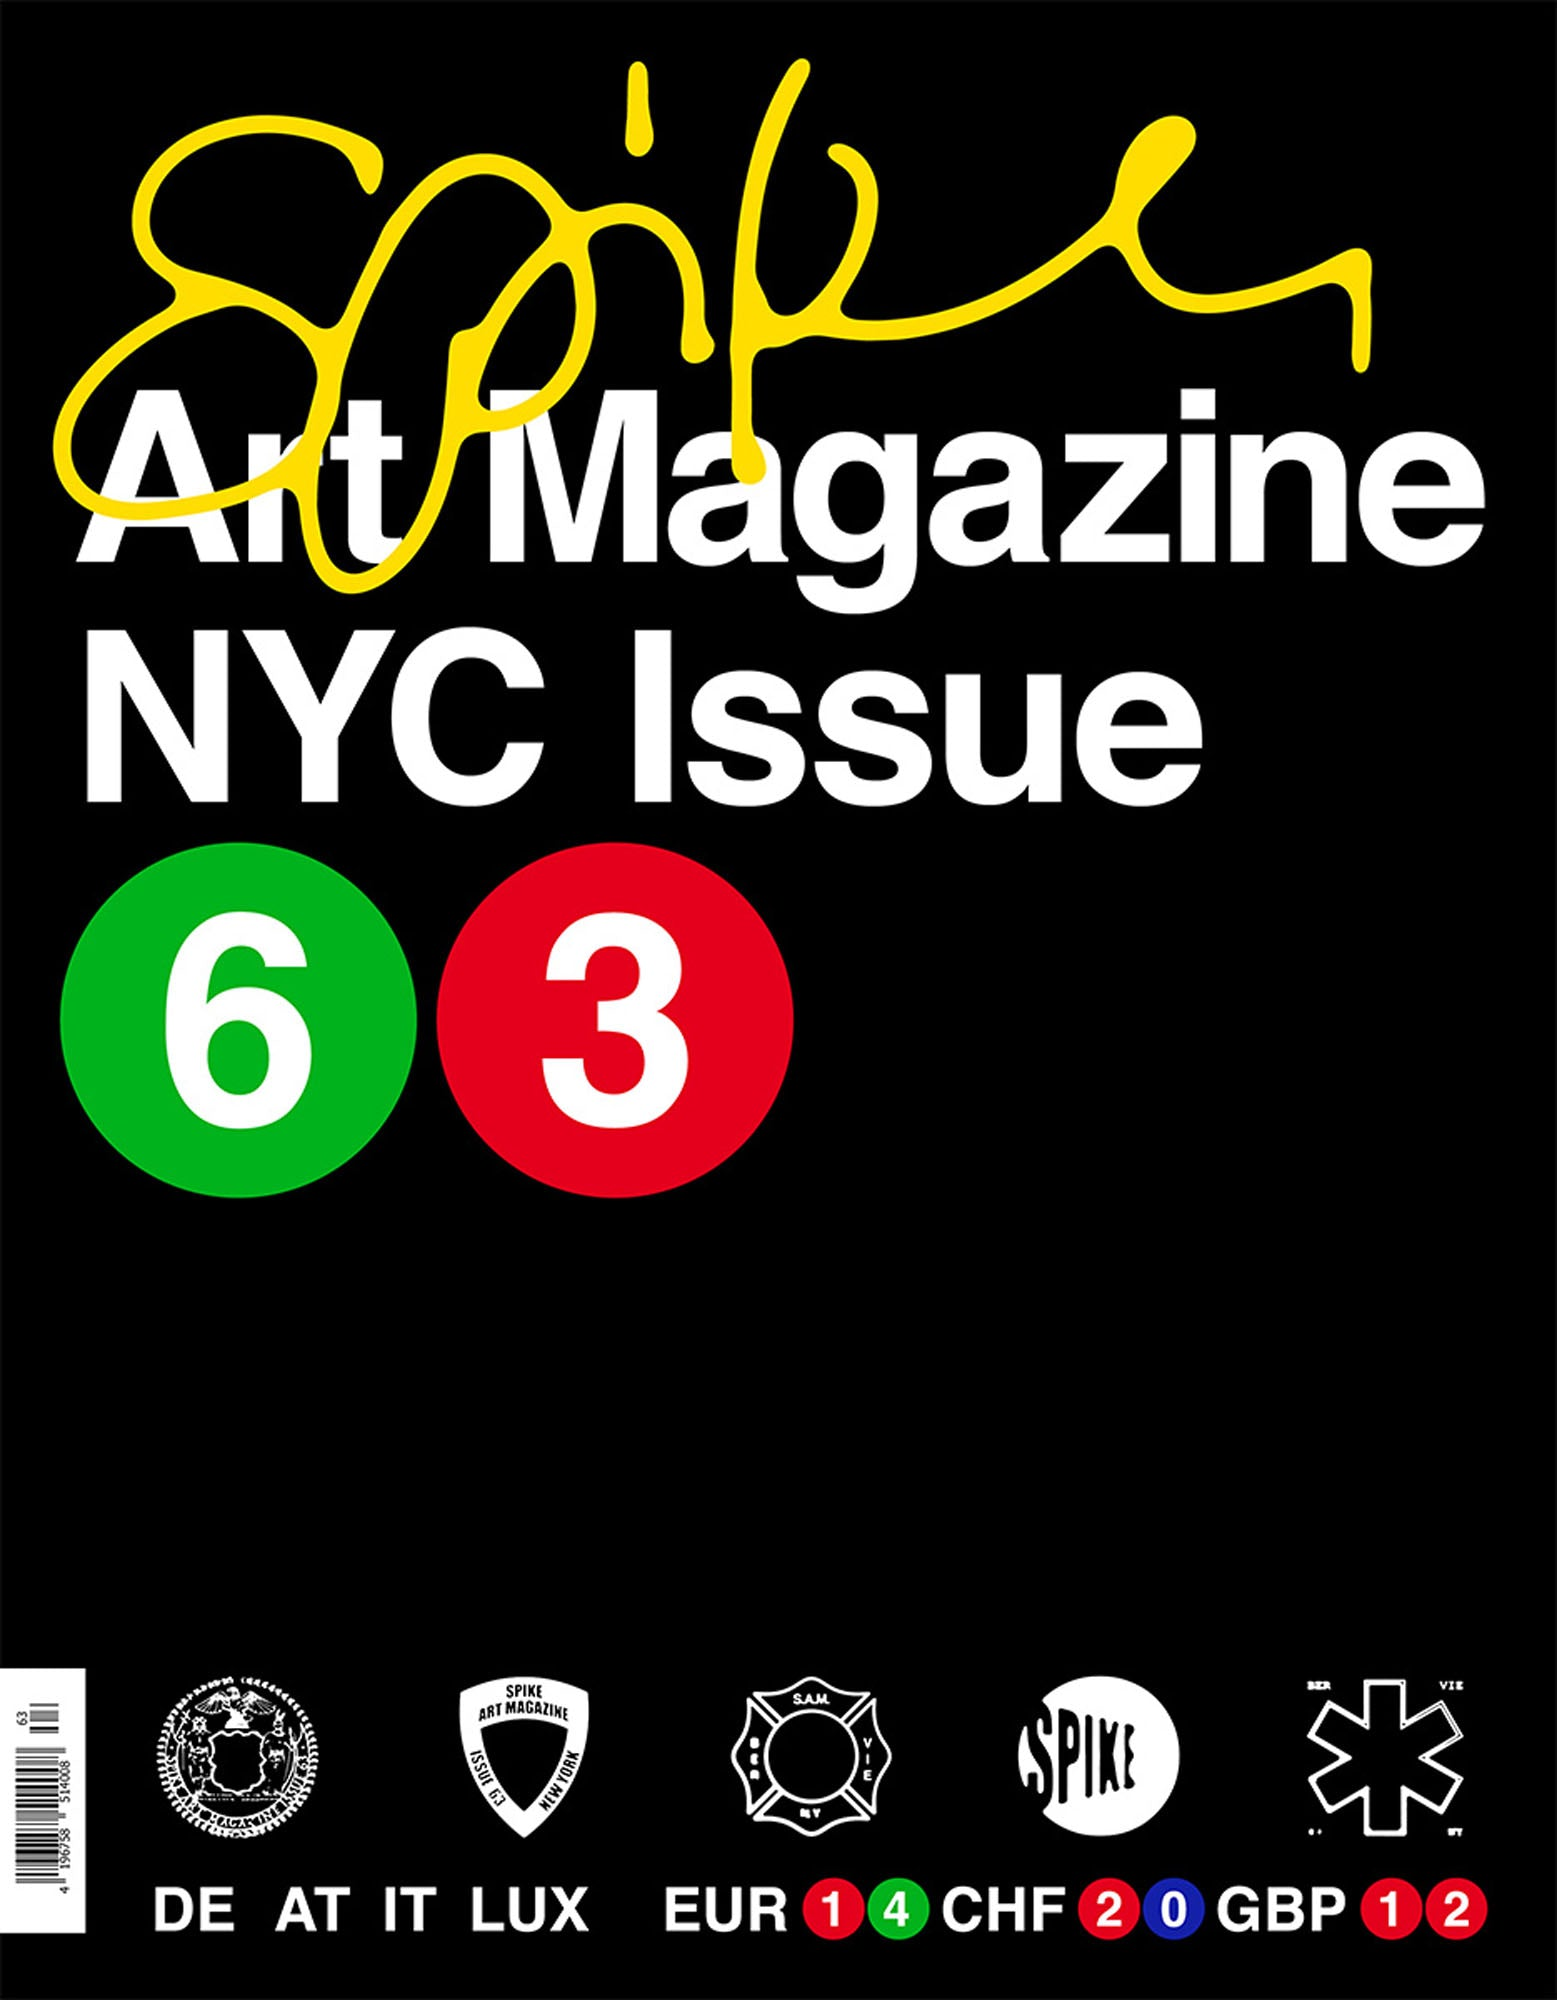 ISSUE 63 (SPRING 2020): The NYC Issue